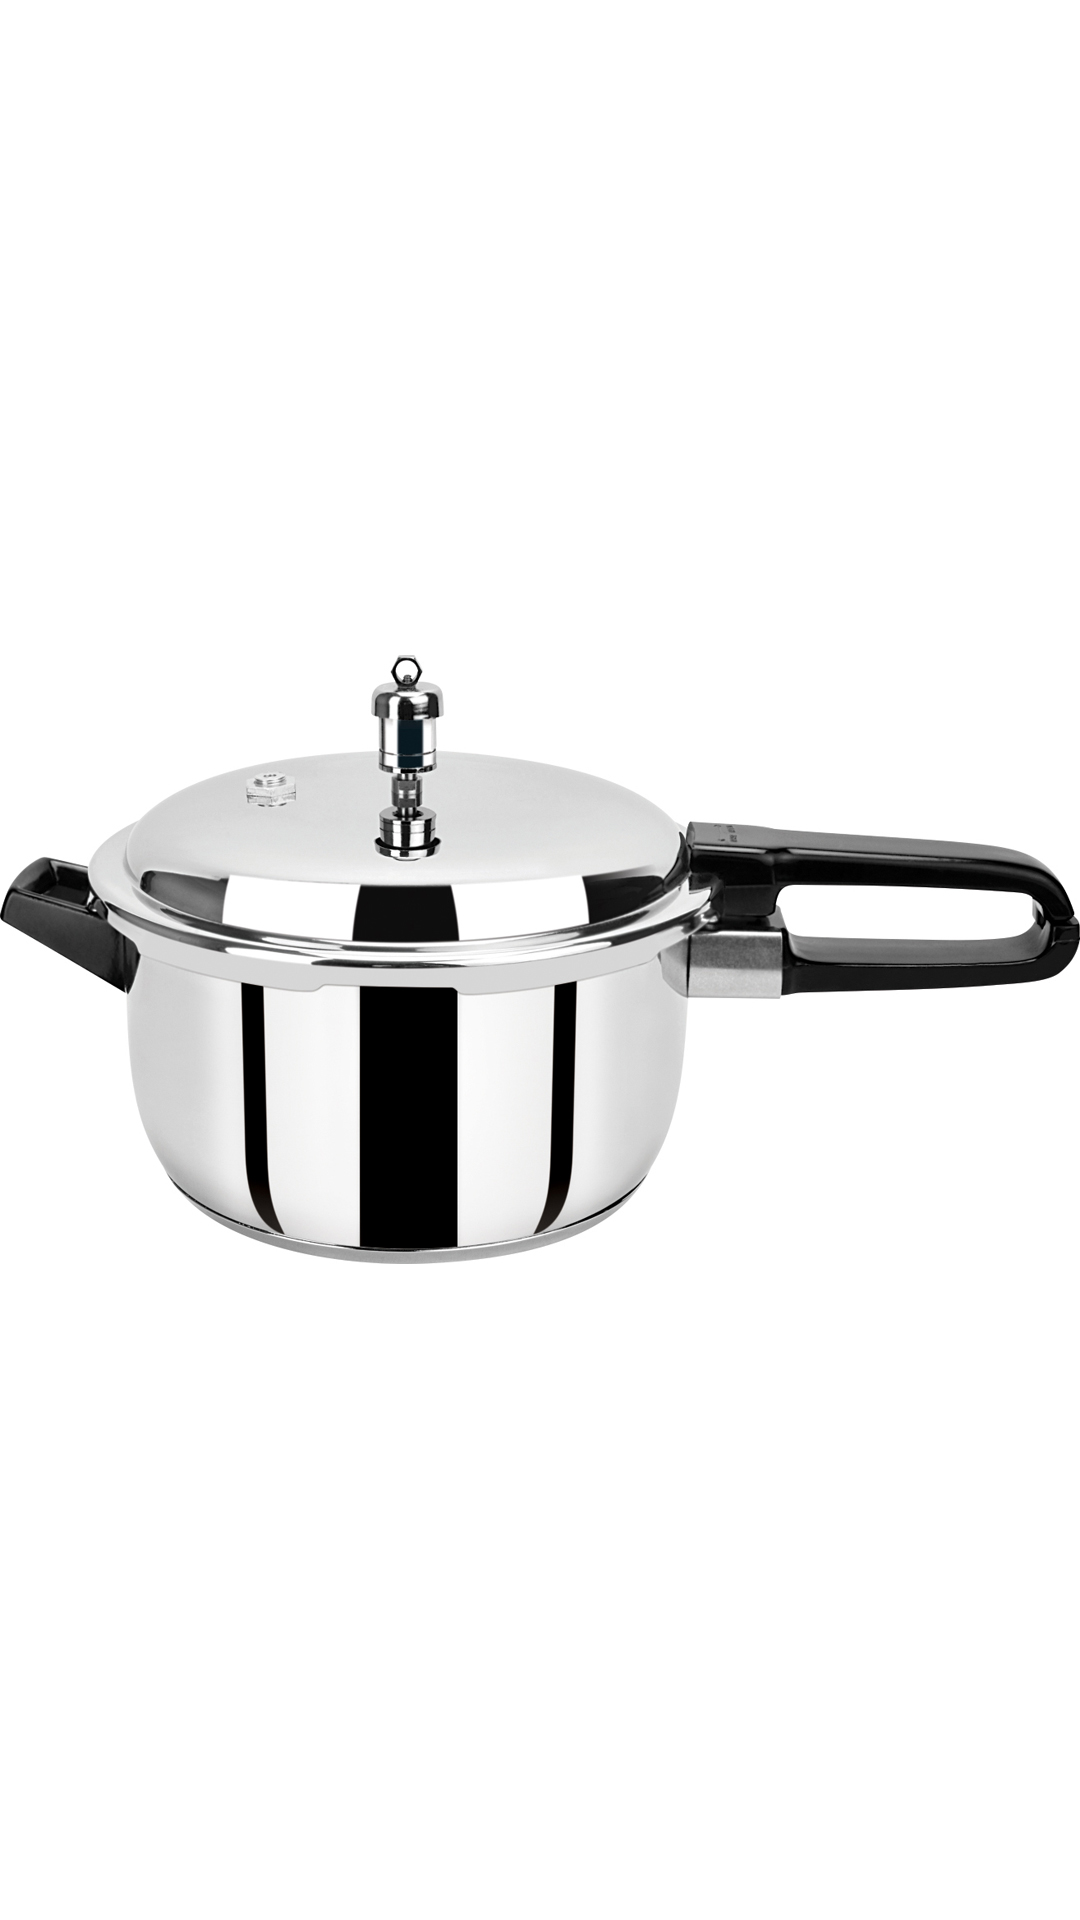 Pristine Induction Base Stainless Steel Pressure Cooker, 3Ltr